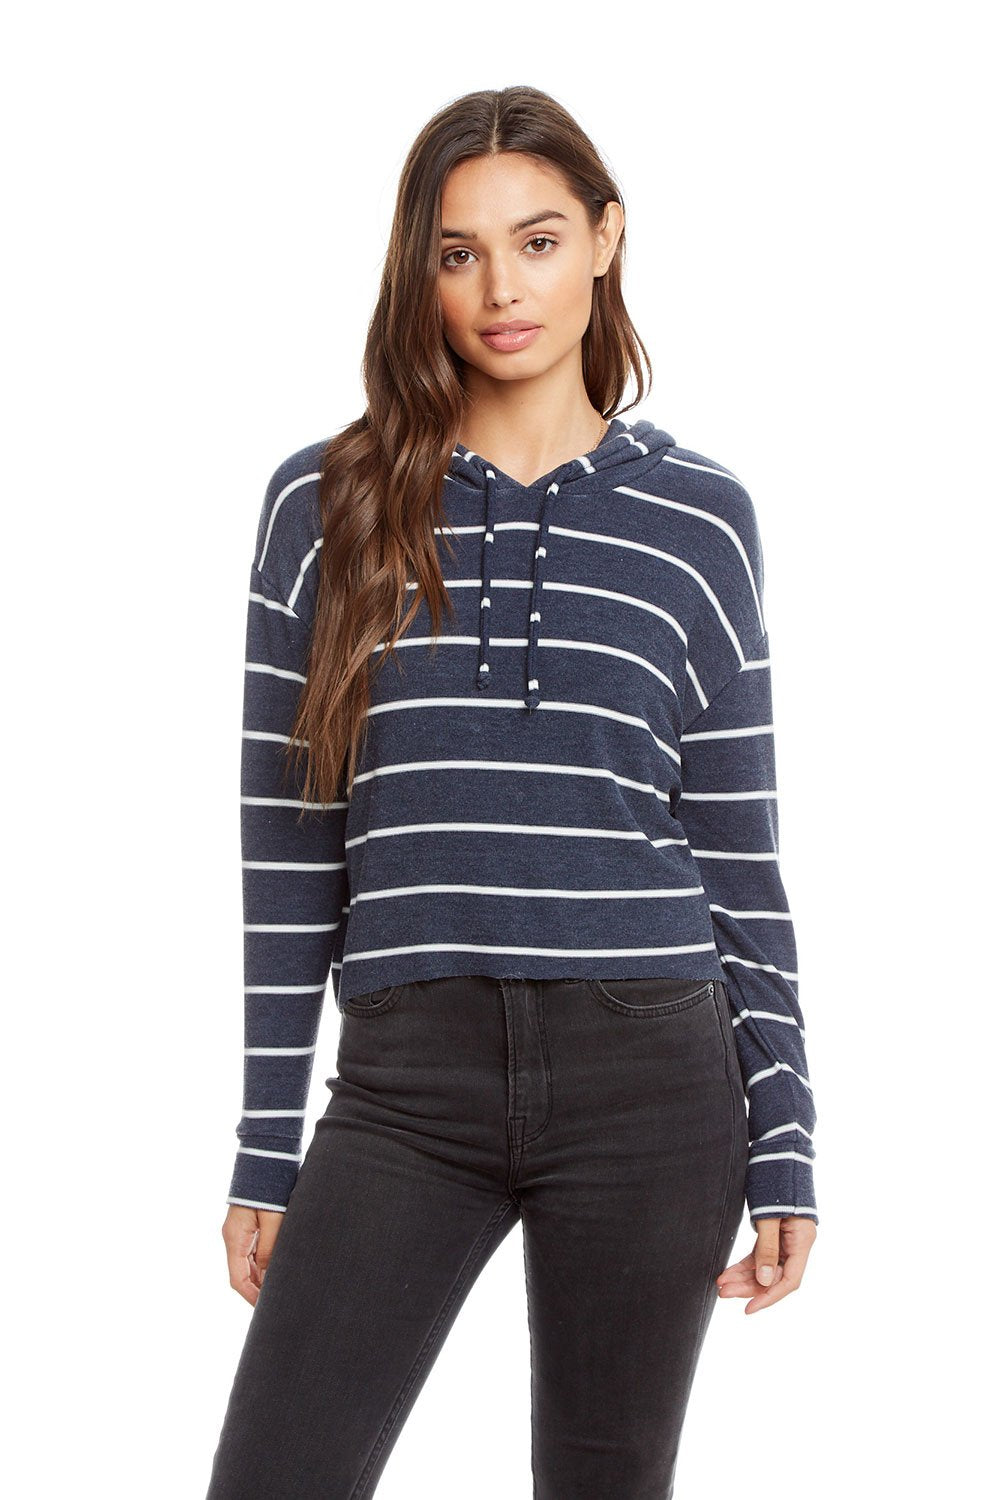 Chaser Cozy Knit L/S Hi Lo Cropped Hoodie - Dark blue with white stripes